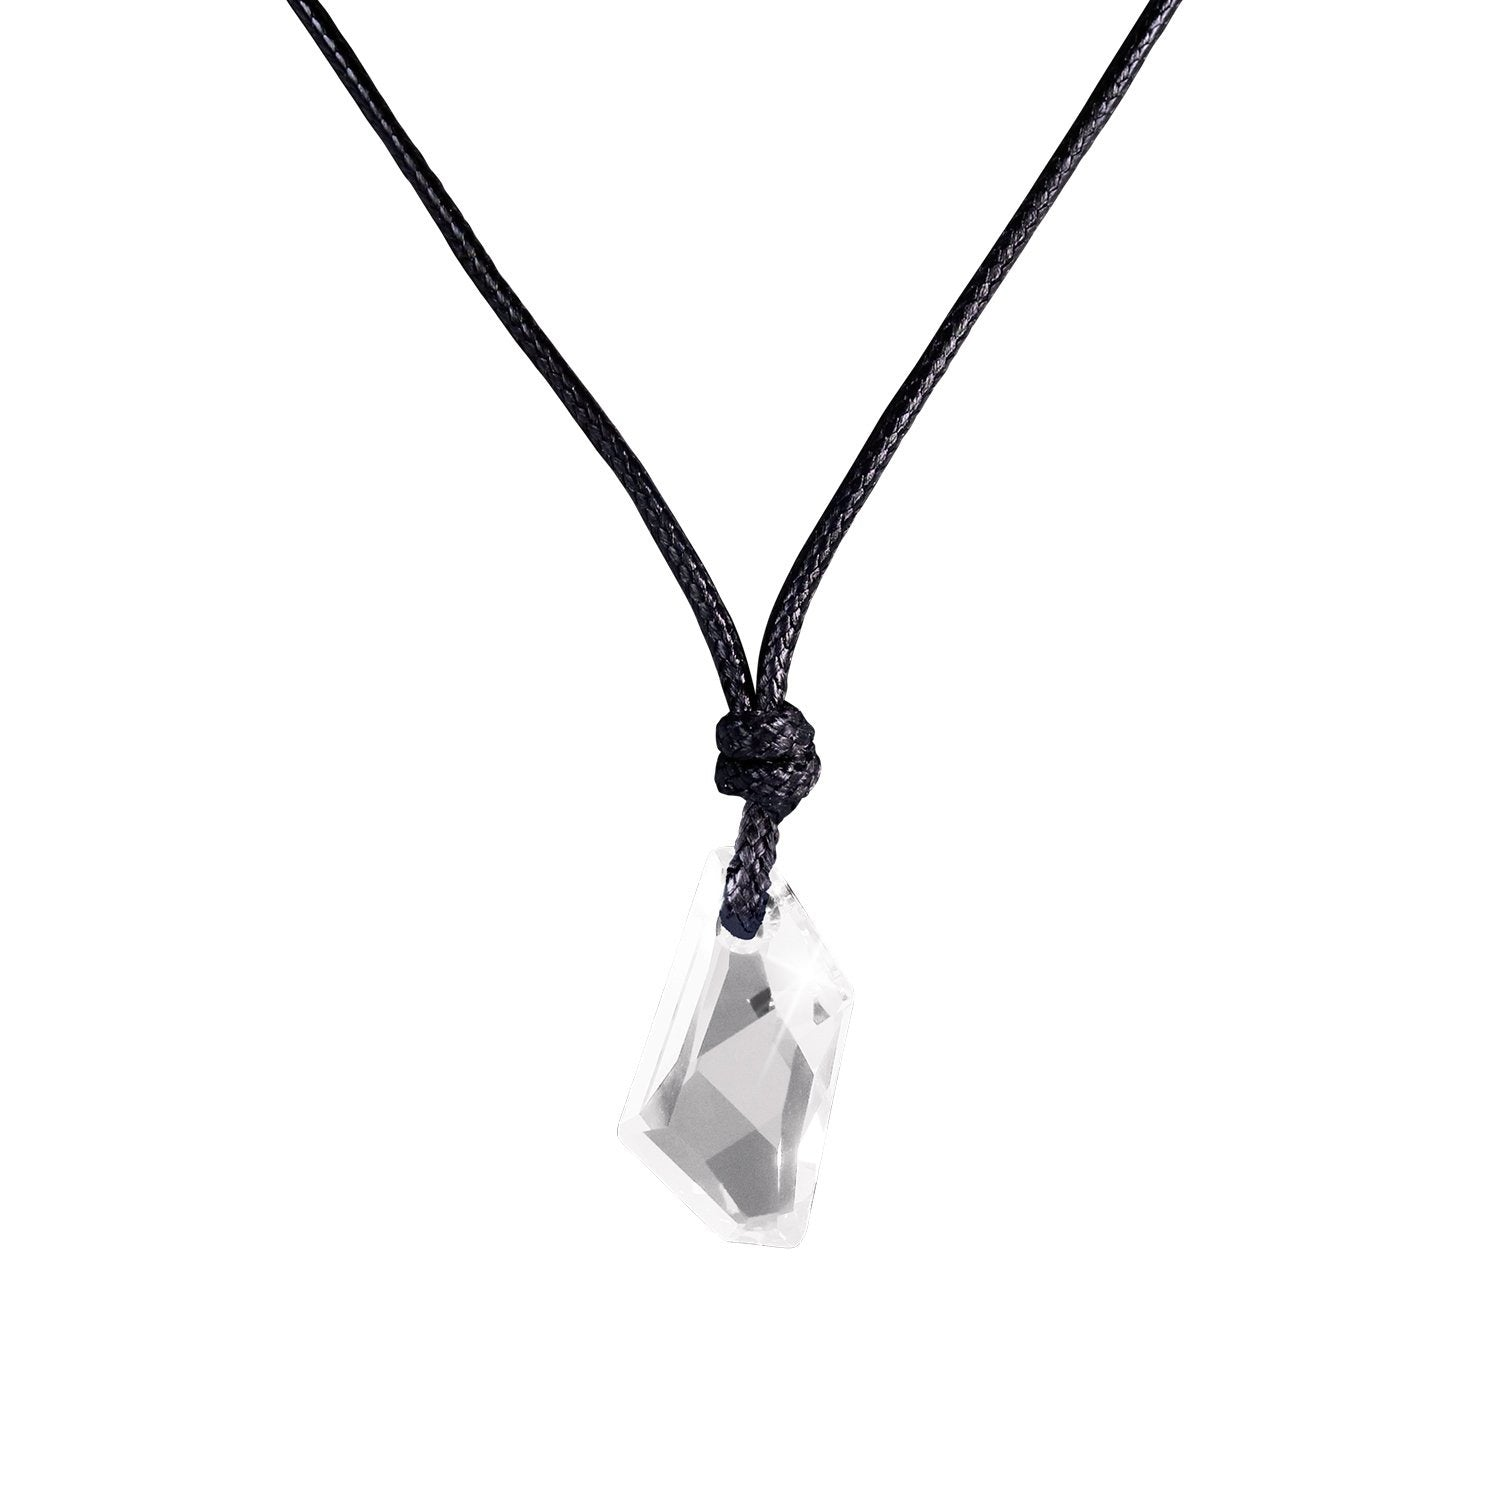 【DE-ART】Polygon Swarovski® Crystal Pendant